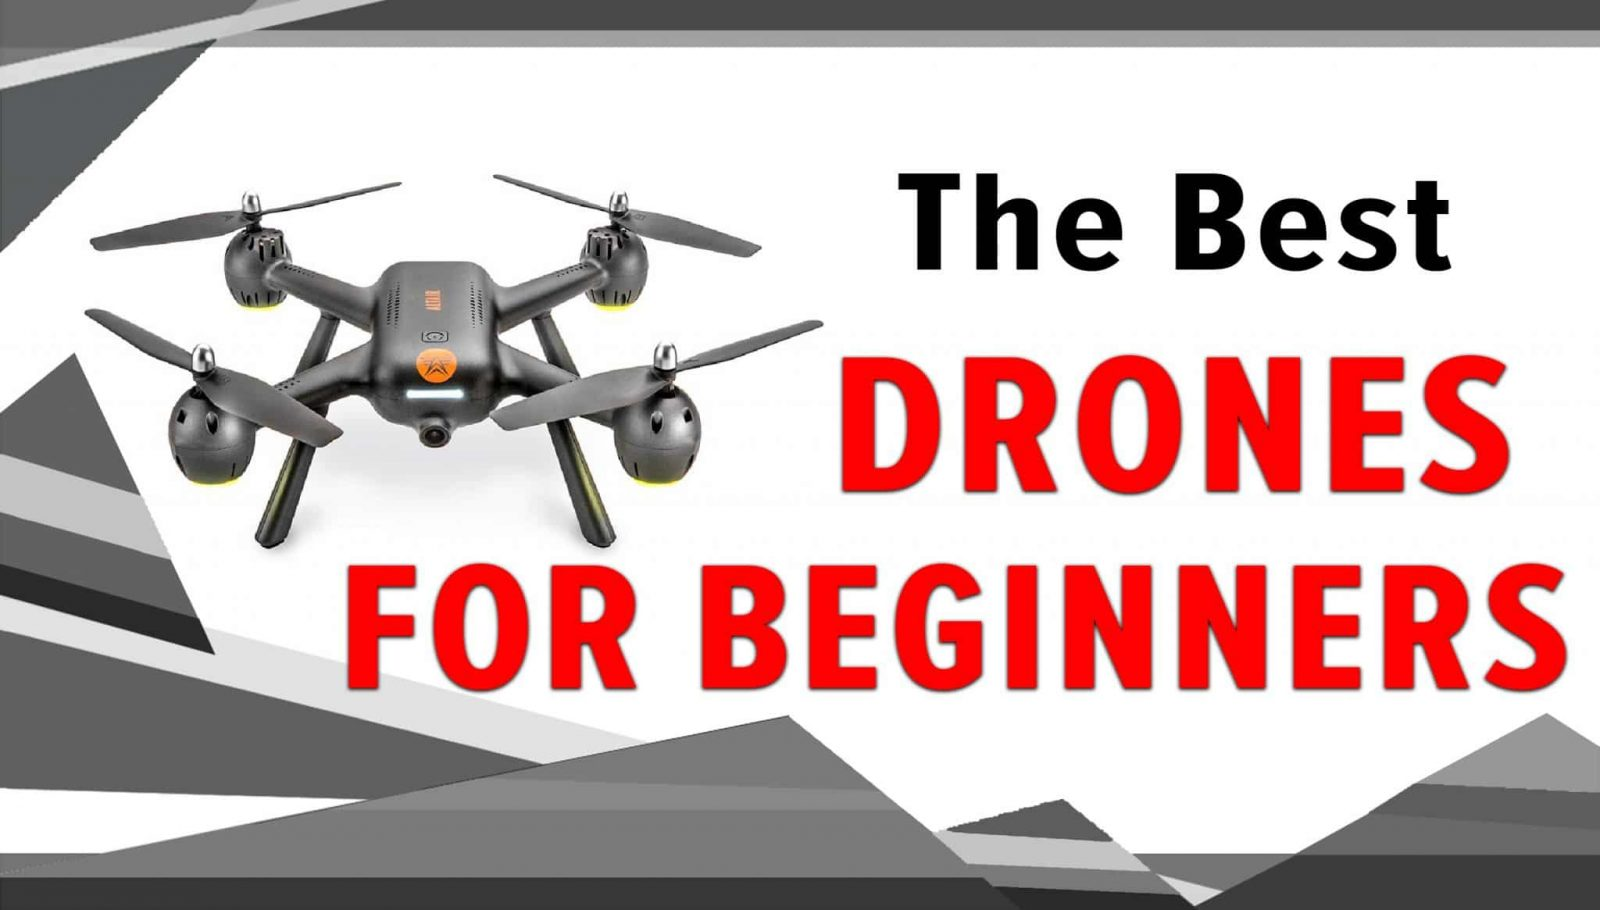 Best Beginner Drone: Starter (Entry Level) Drones for Beginners